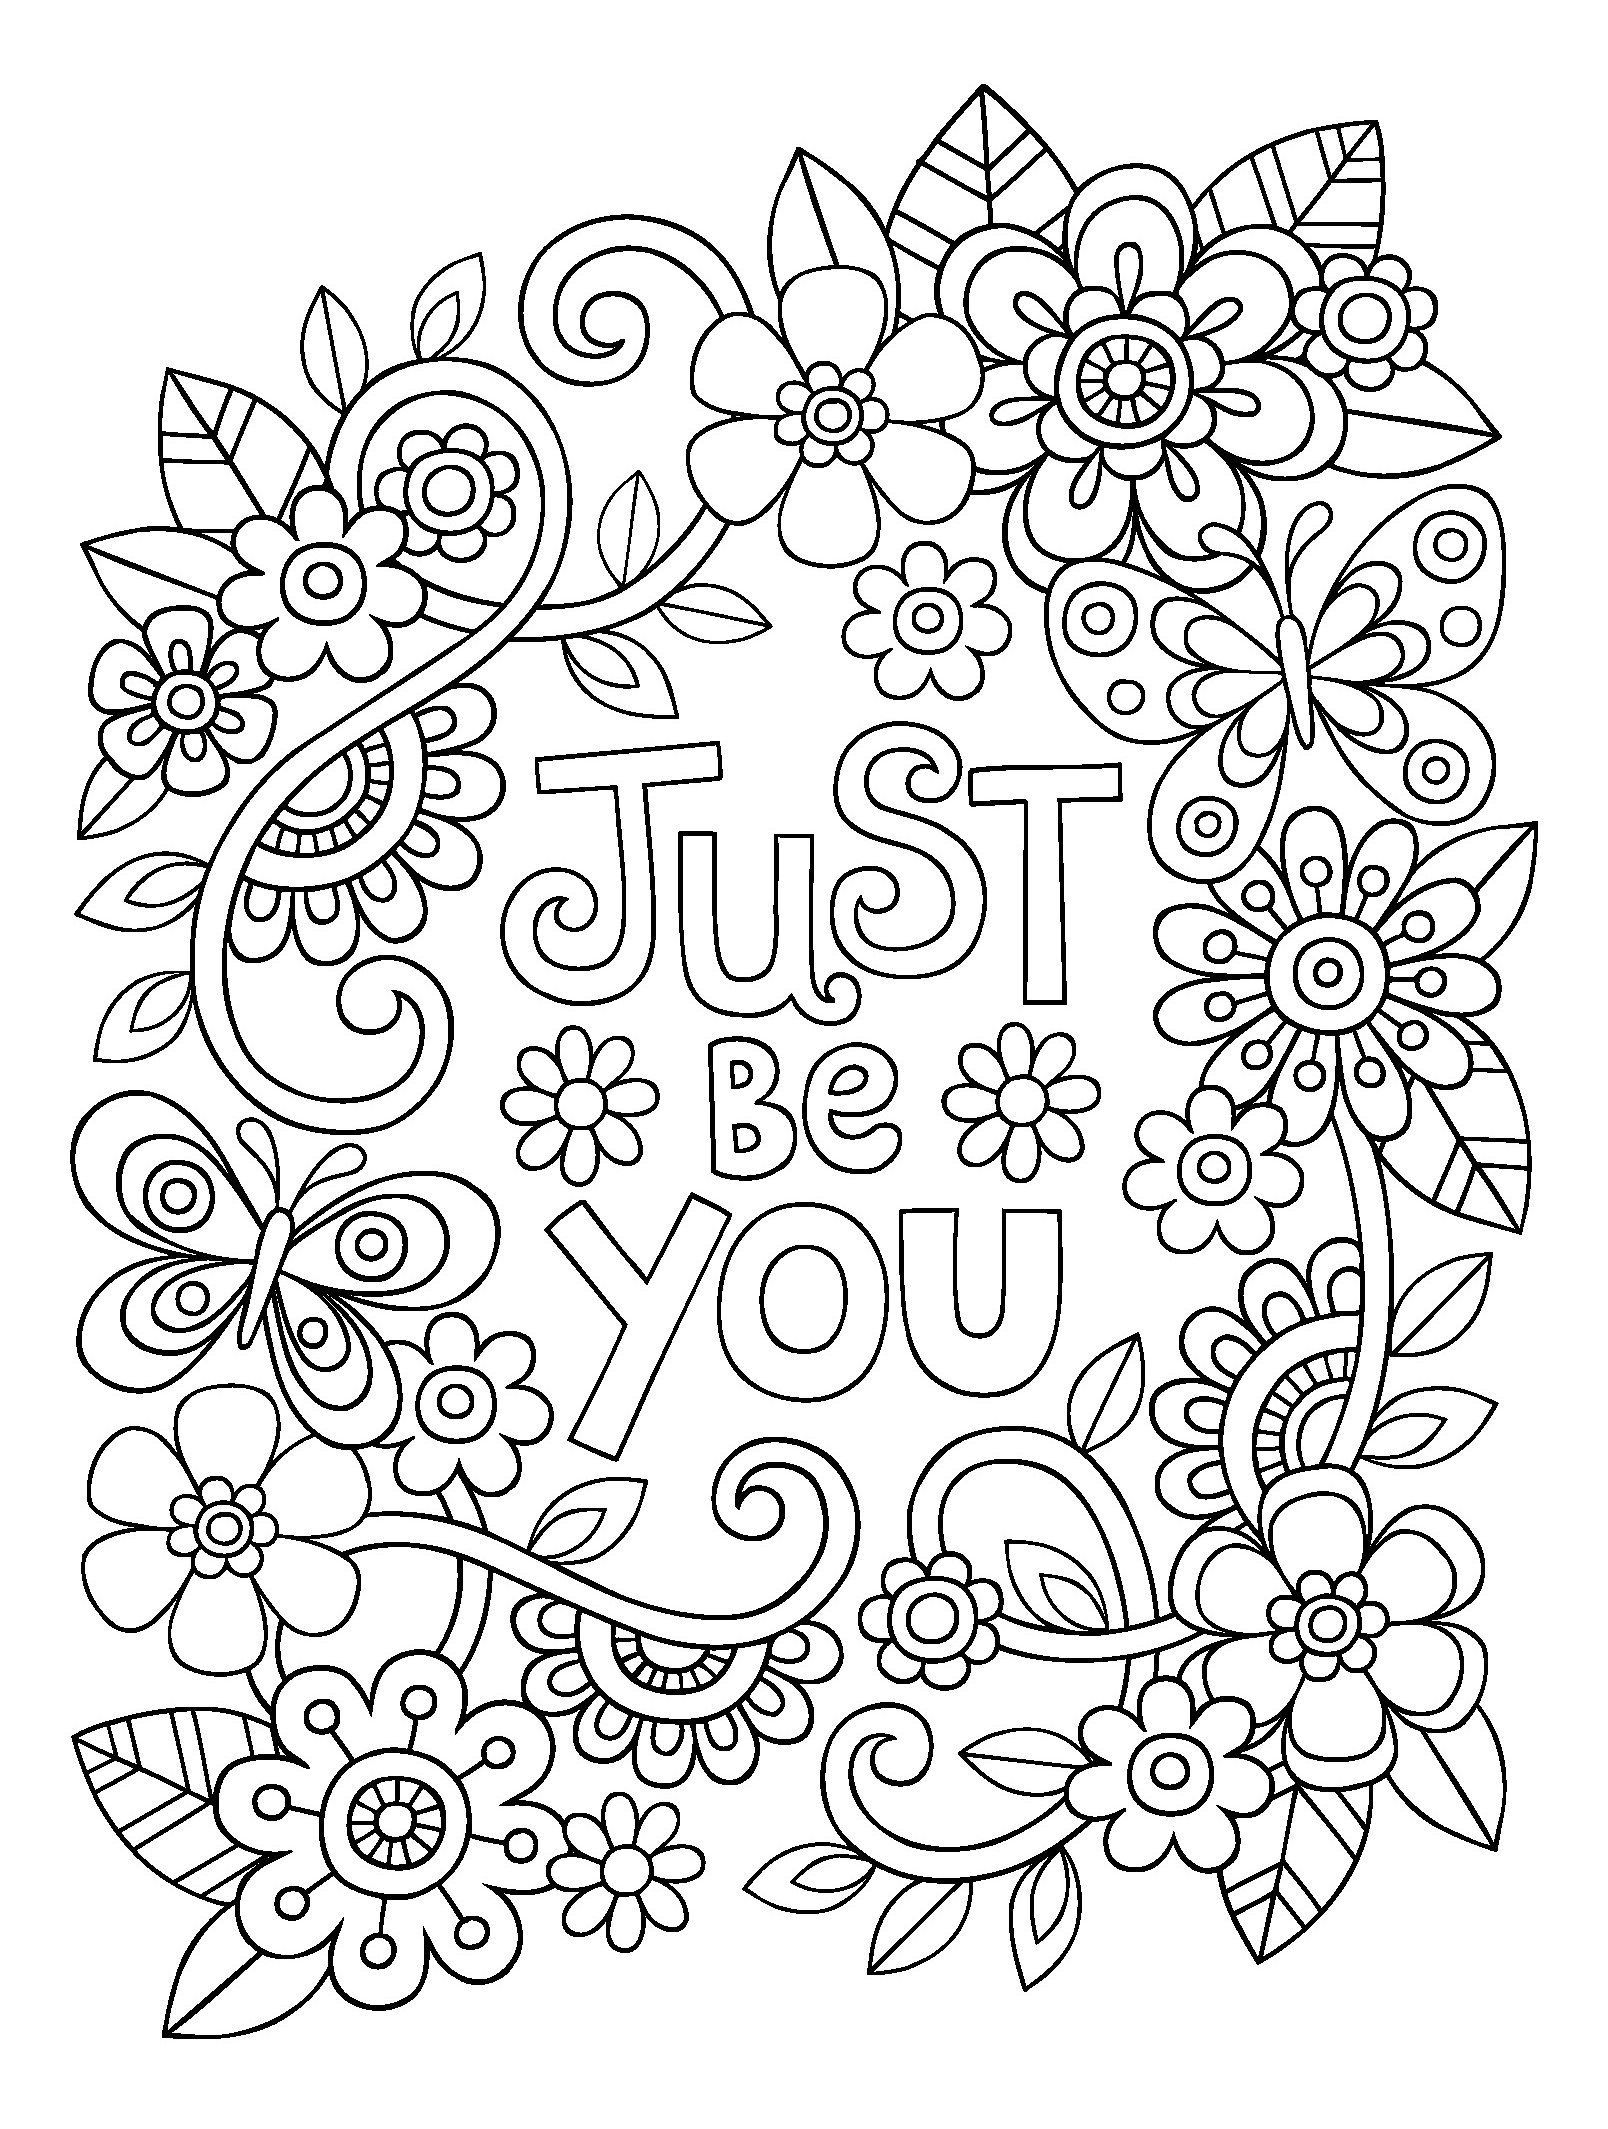 Related Image Coloring Pages Inspirational Quote Coloring Pages Coloring Book Pages